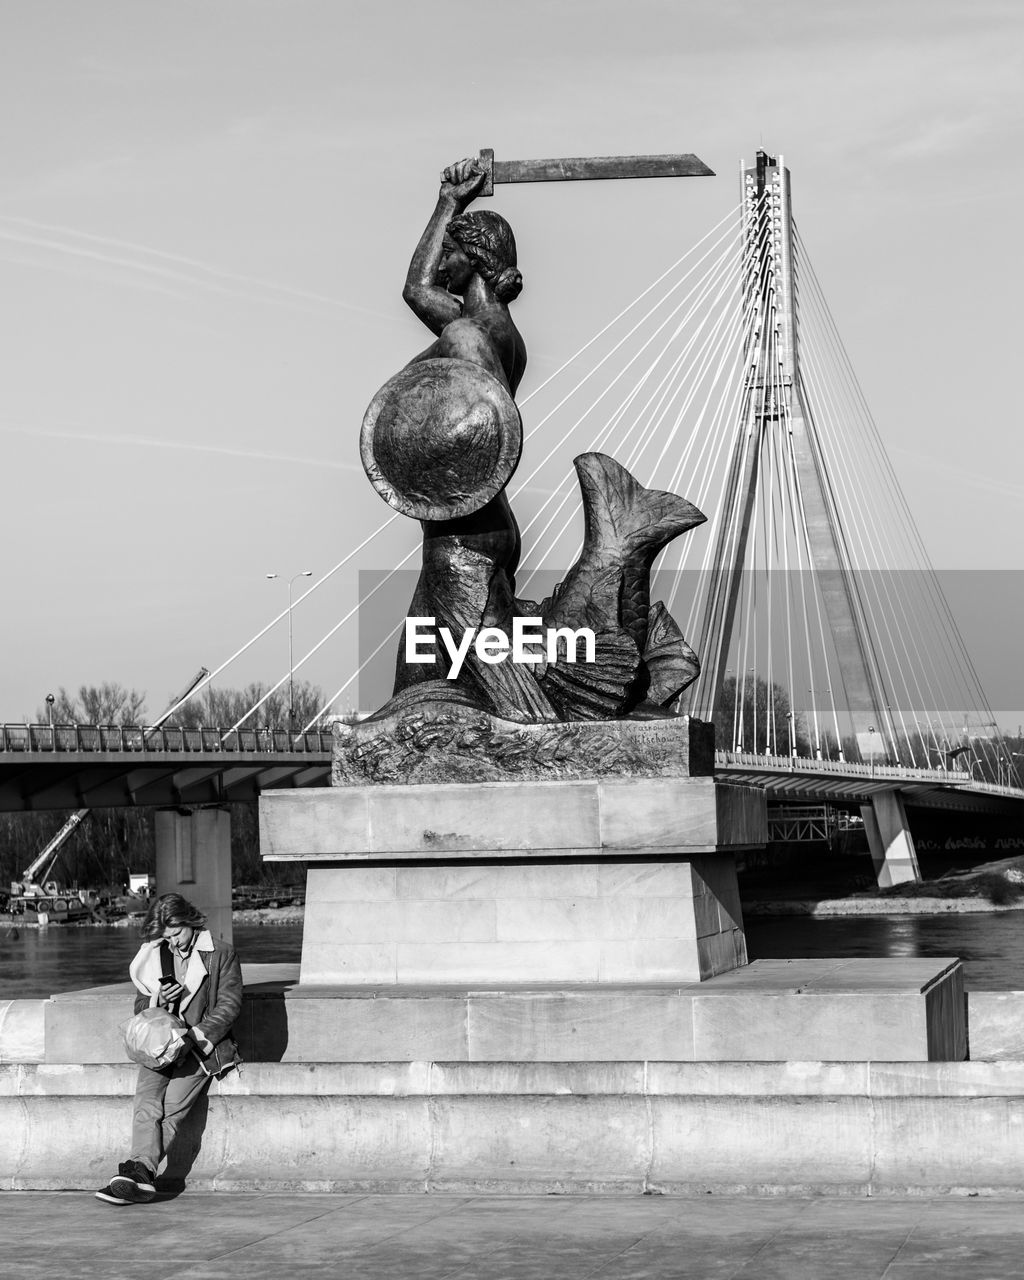 LOW ANGLE VIEW OF STATUE ON BRIDGE